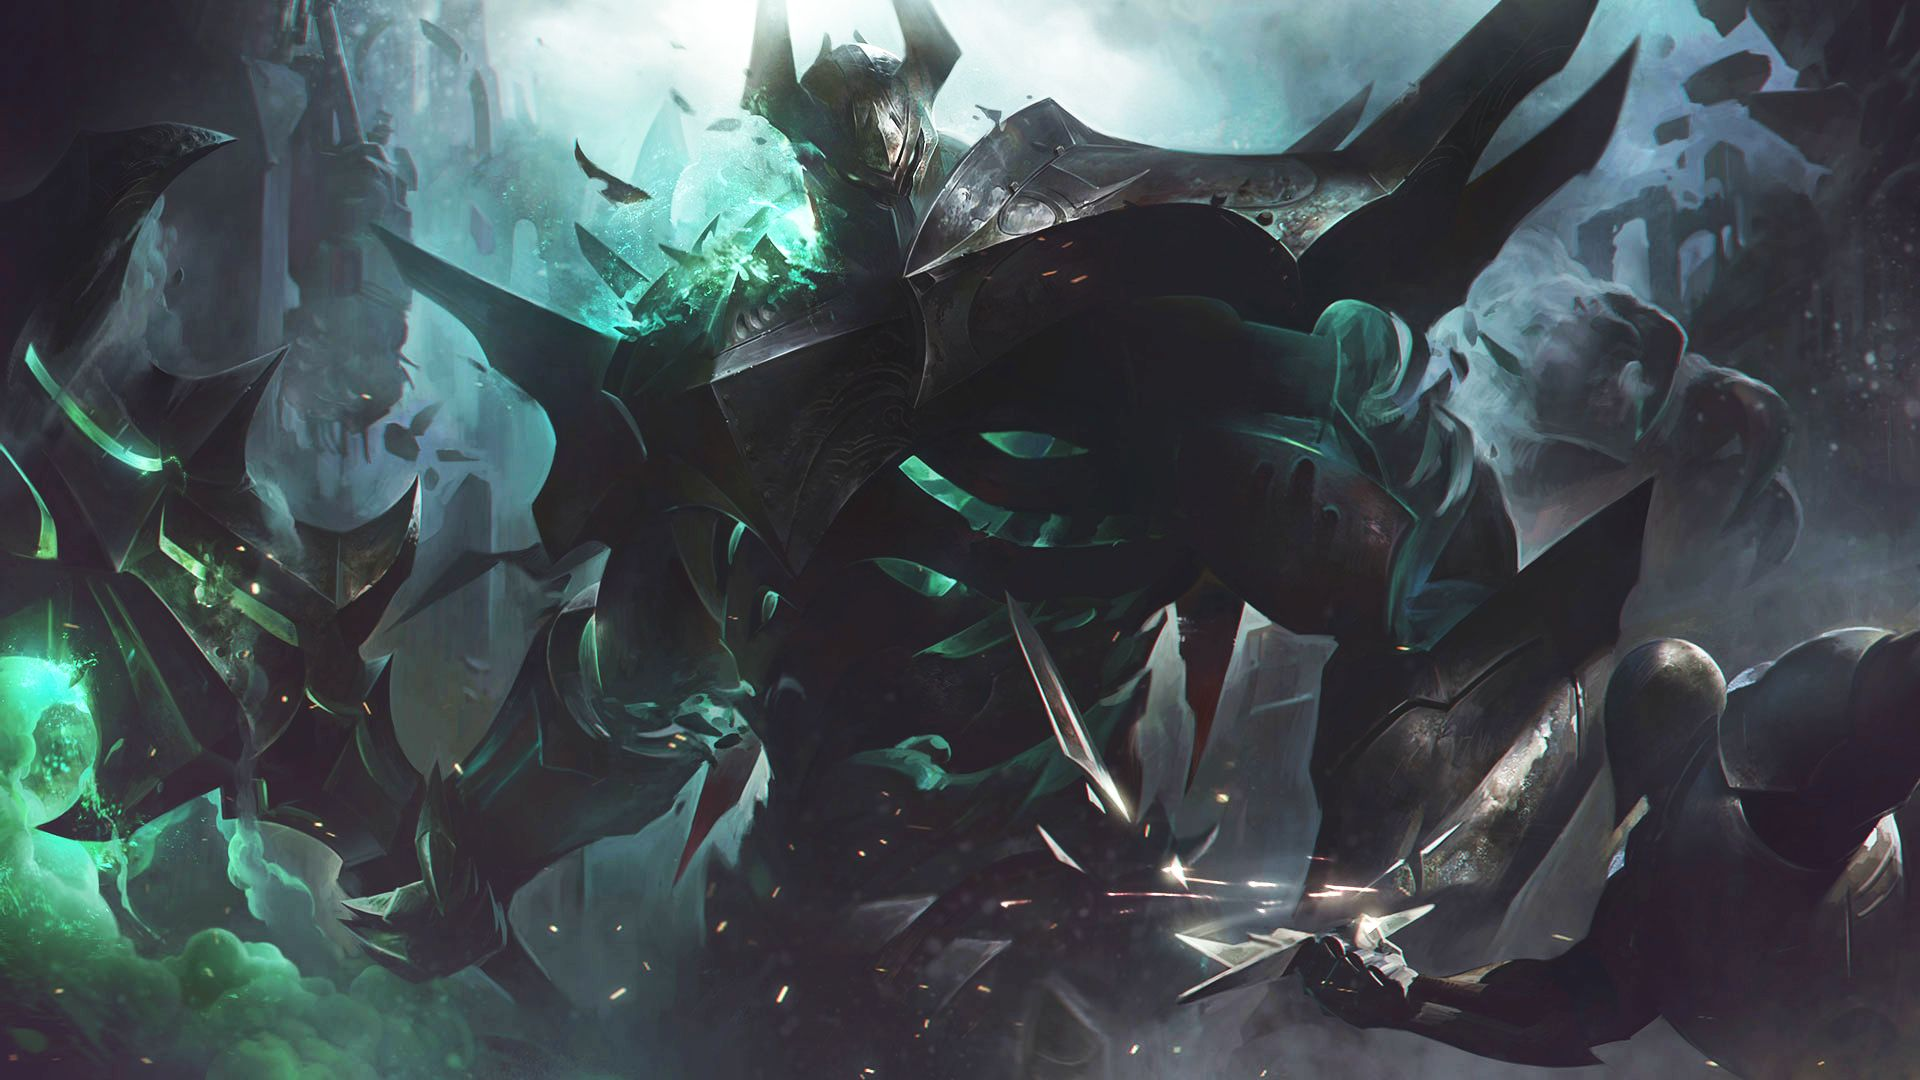 Mordekaiser Rework Splash Art League of Legends Jeux Vidéos Vonguru